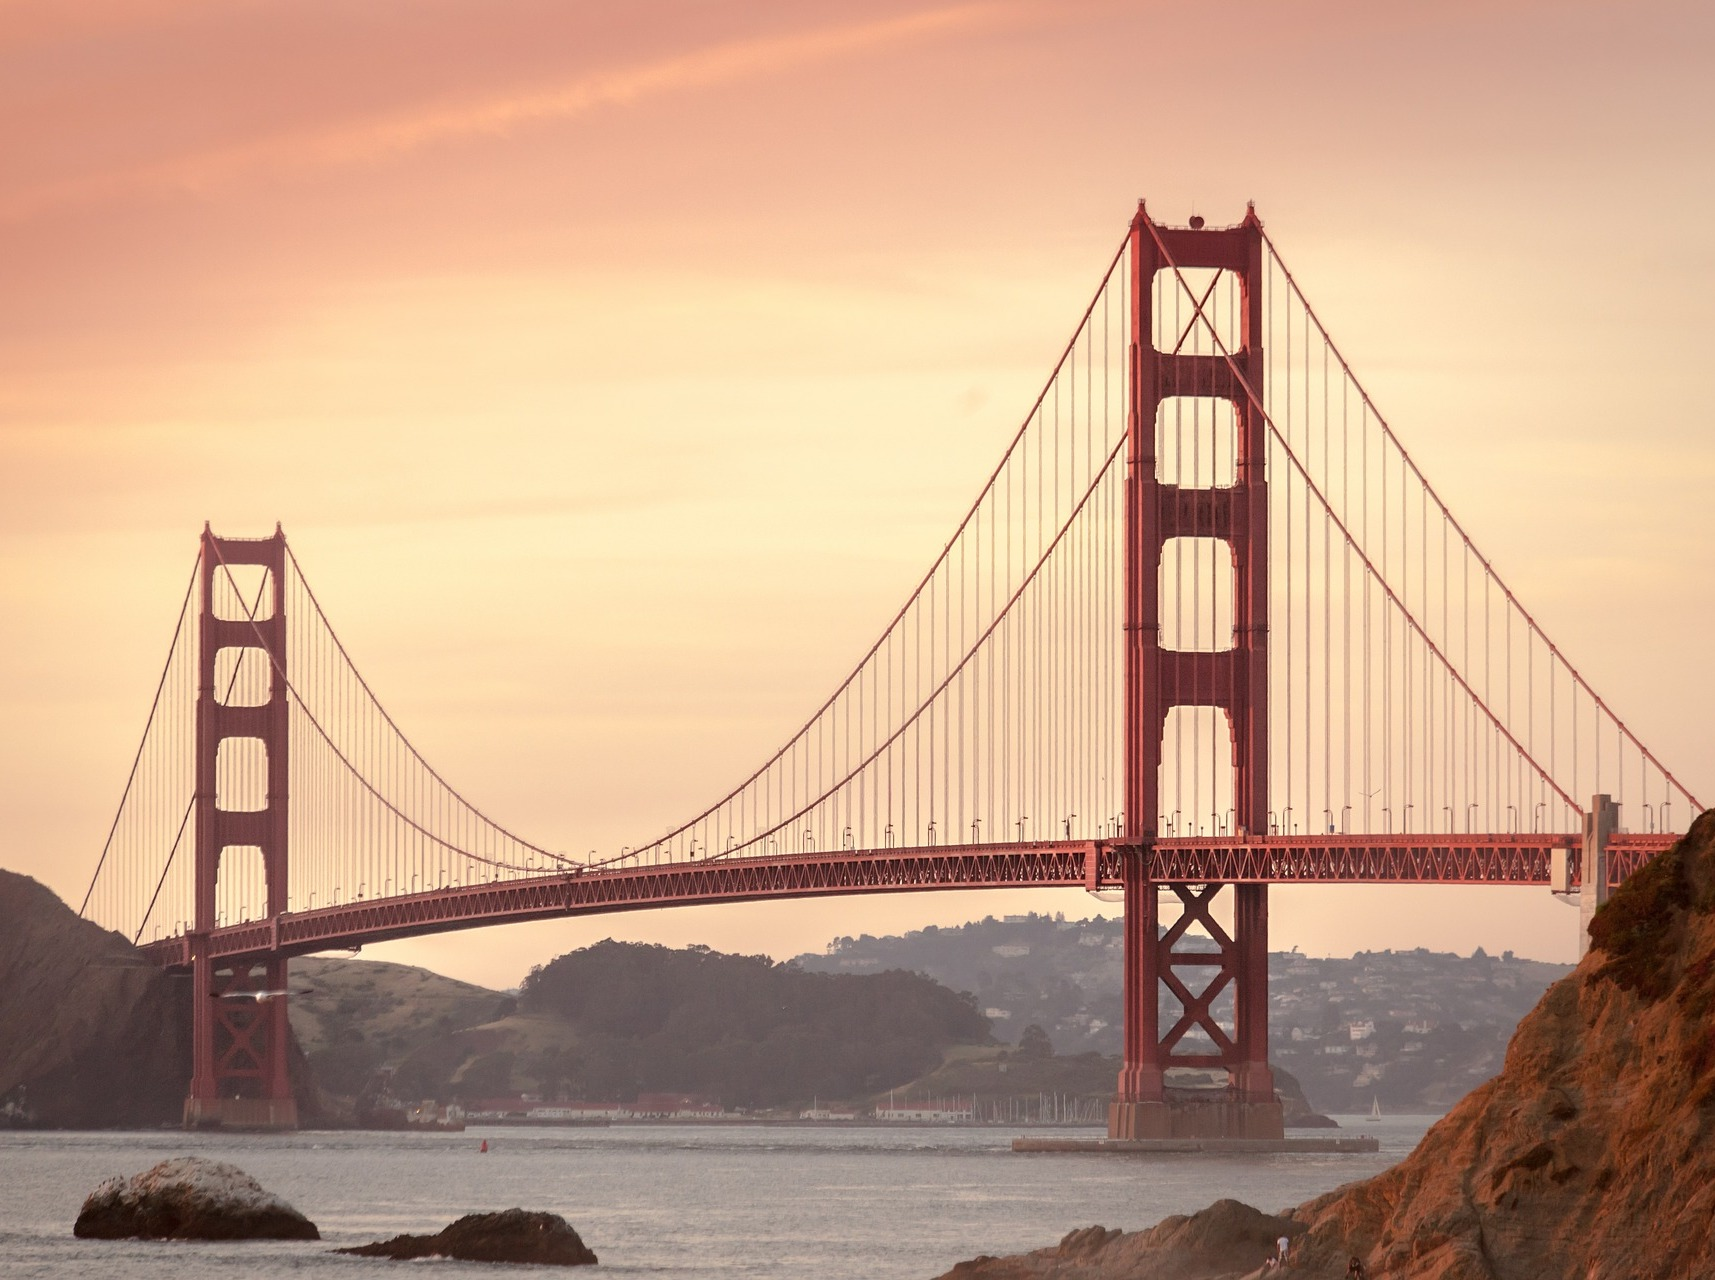 San Francisco - February 26 - February 27Debuting our brand new, one-of-a-kind Sales Mission week on the West Coast, we welcome you to the City by the Bay with personalized key agencies visits and an evening at Chairmaine, San Francisco's Proper Hotel rooftop.